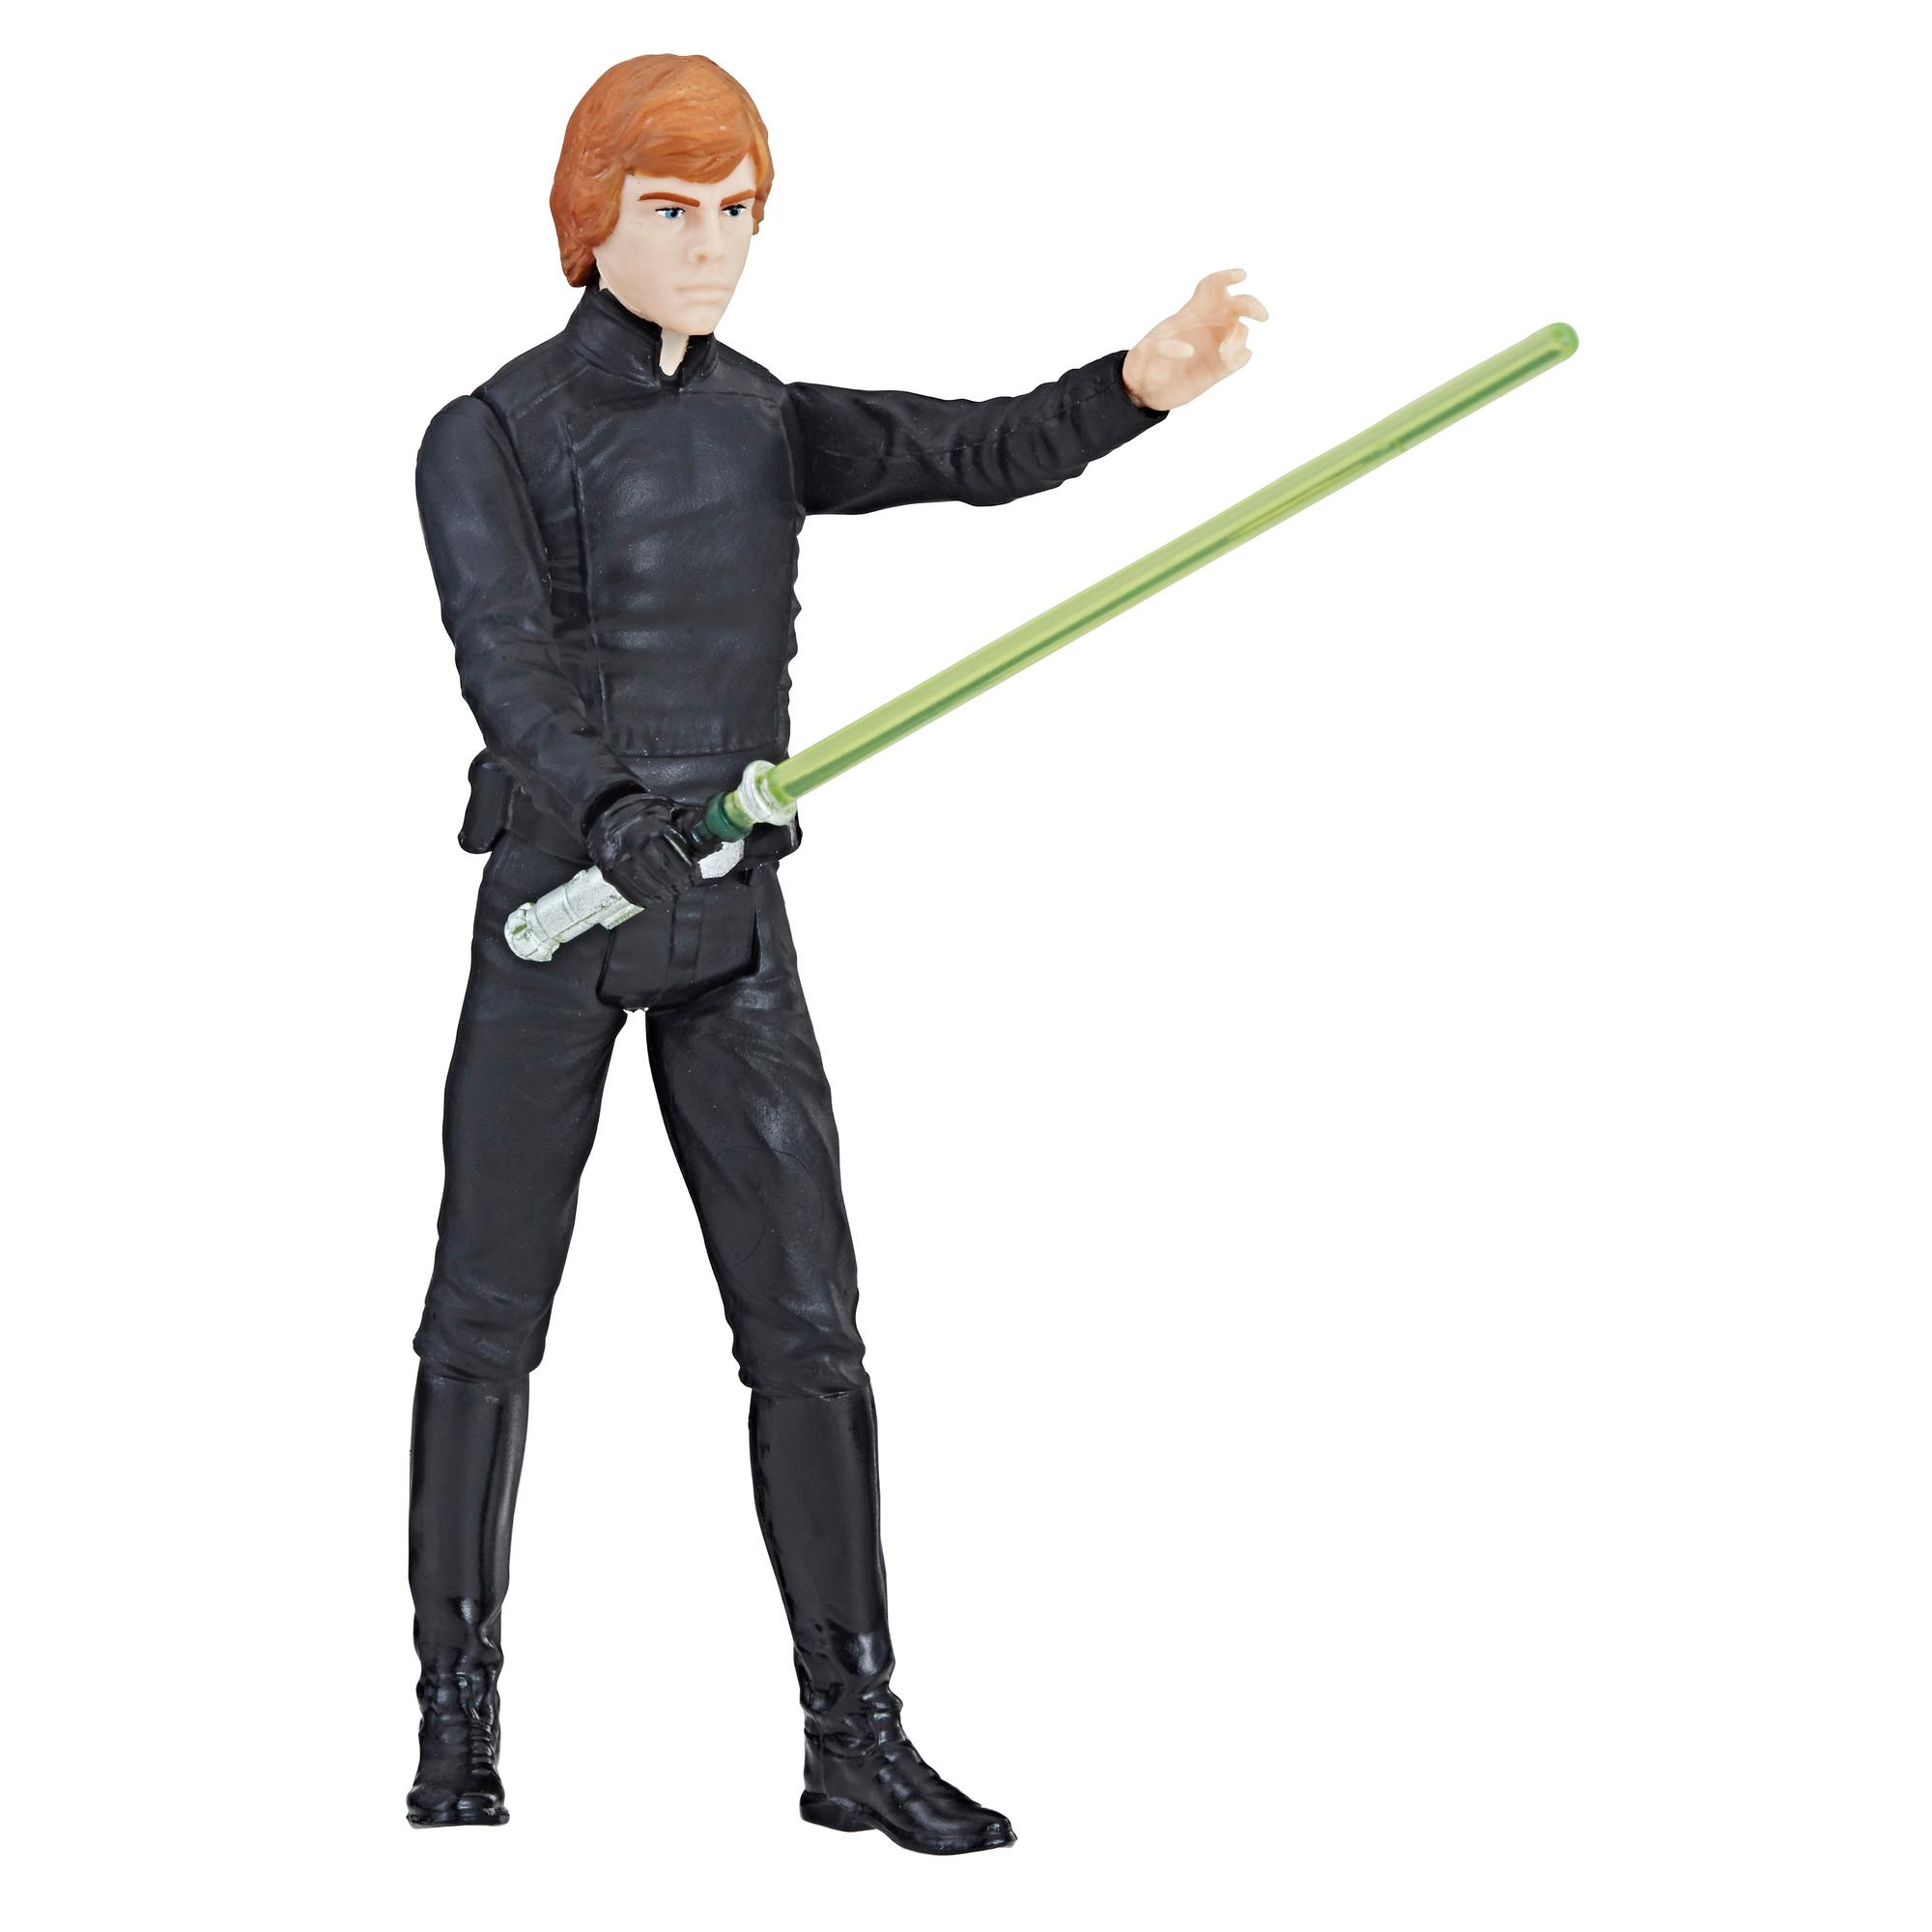 Star Wars Force Link 2.0 Luke Skywalker Figure